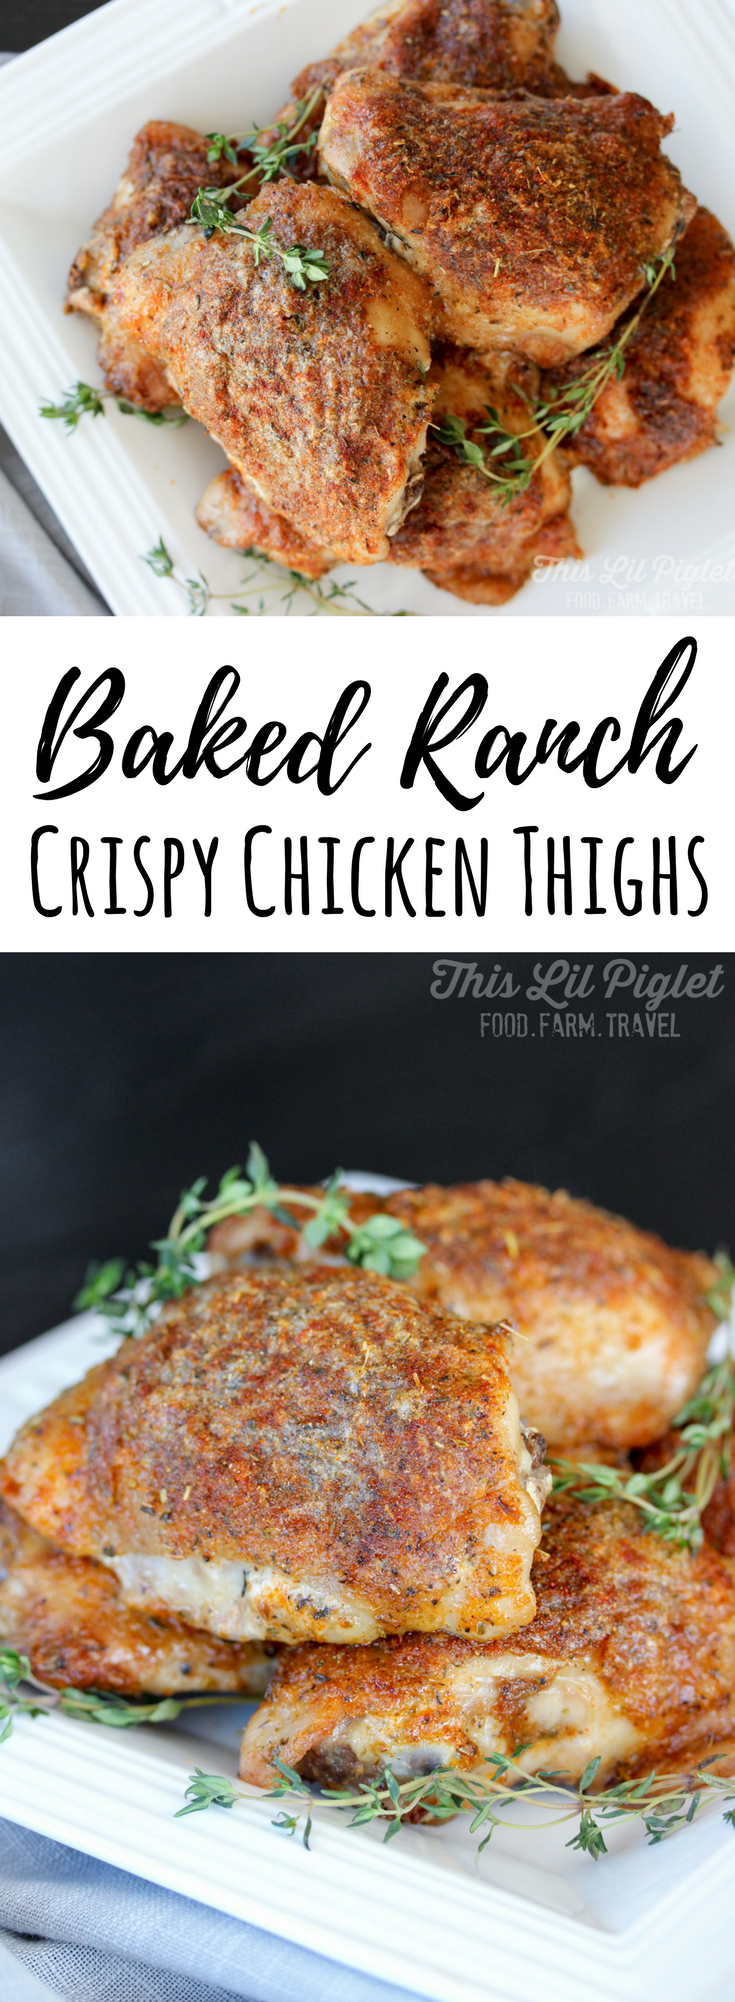 Oven Baked Ranch Crispy Chicken Thighs // thislilpiglet.net